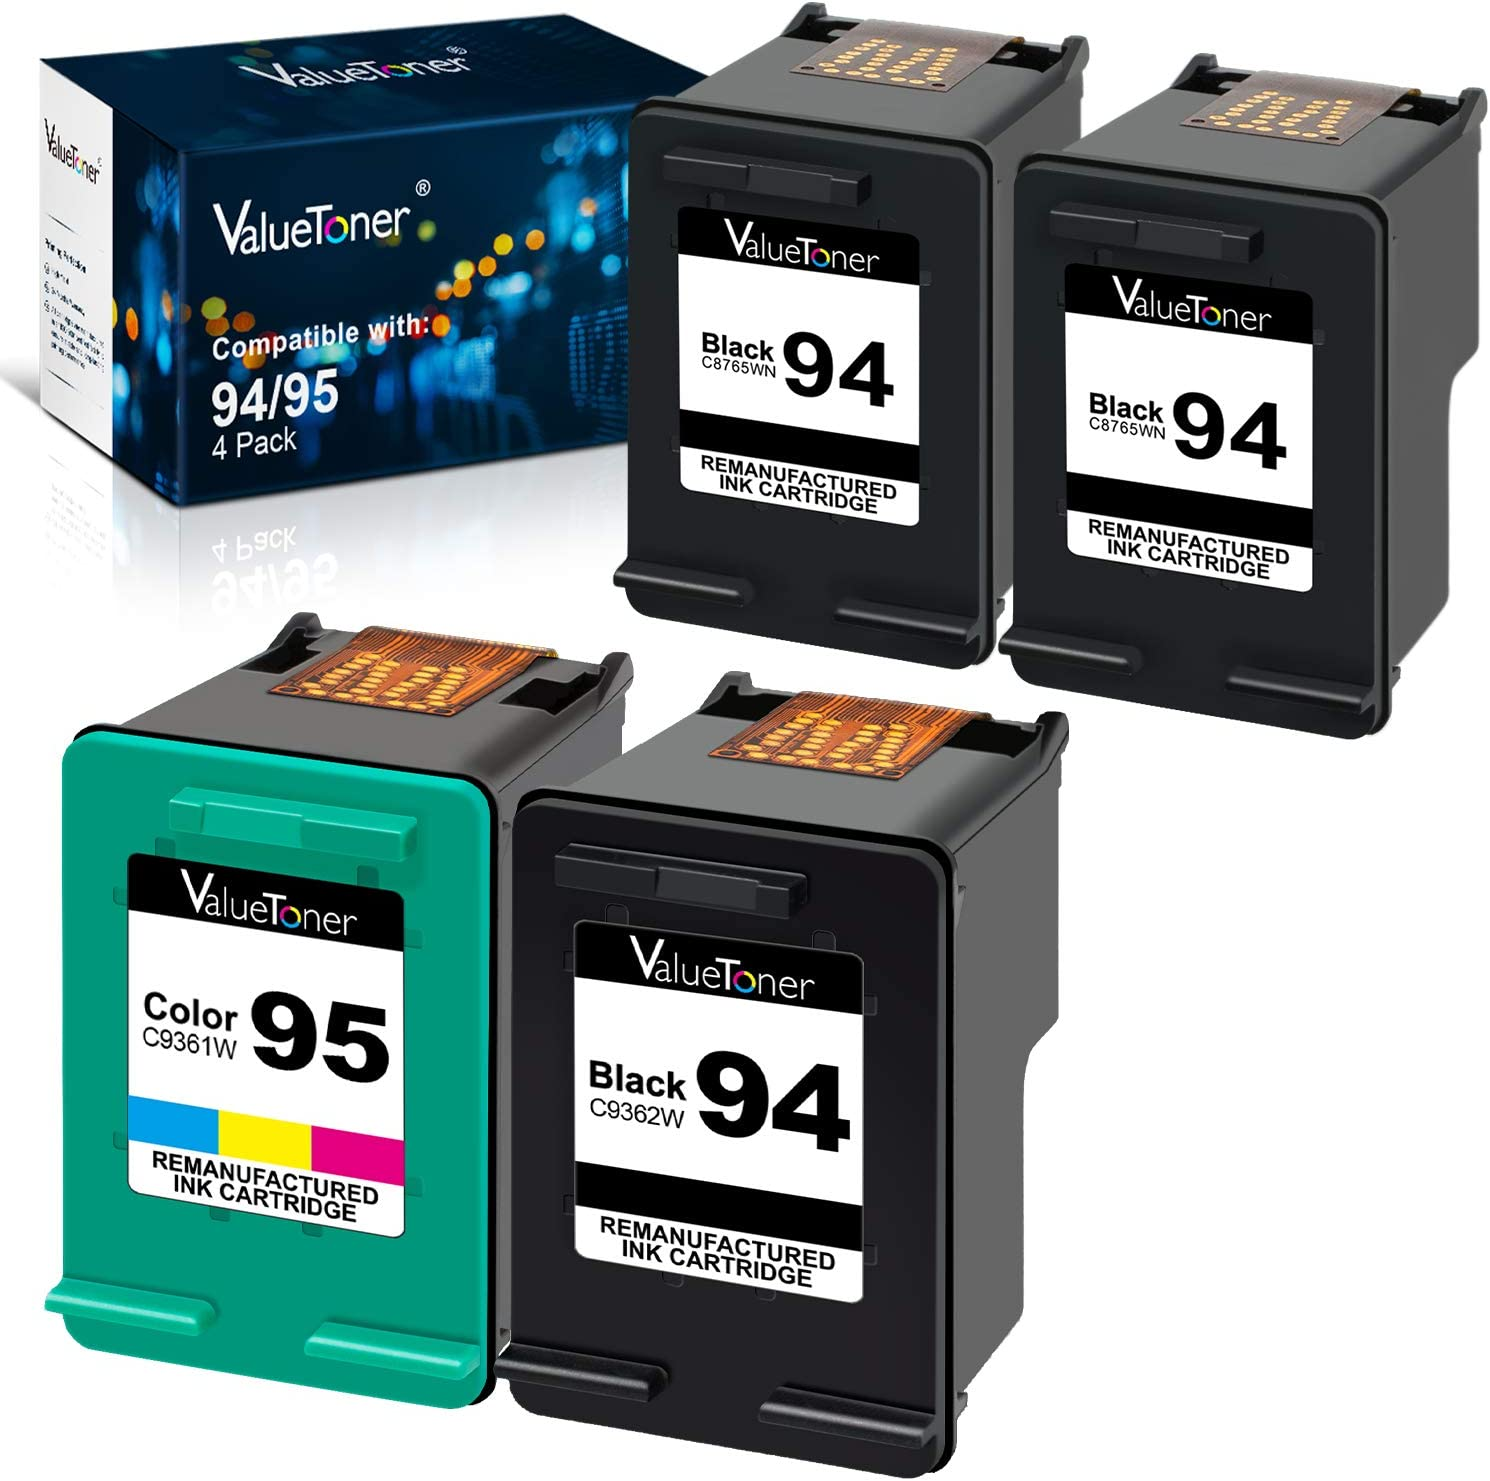 Valuetoner Remanufactured Ink Cartridges Replacement for HP 94 95 2 Pack (1 Black, 1 Color) Bundled with 2 Black